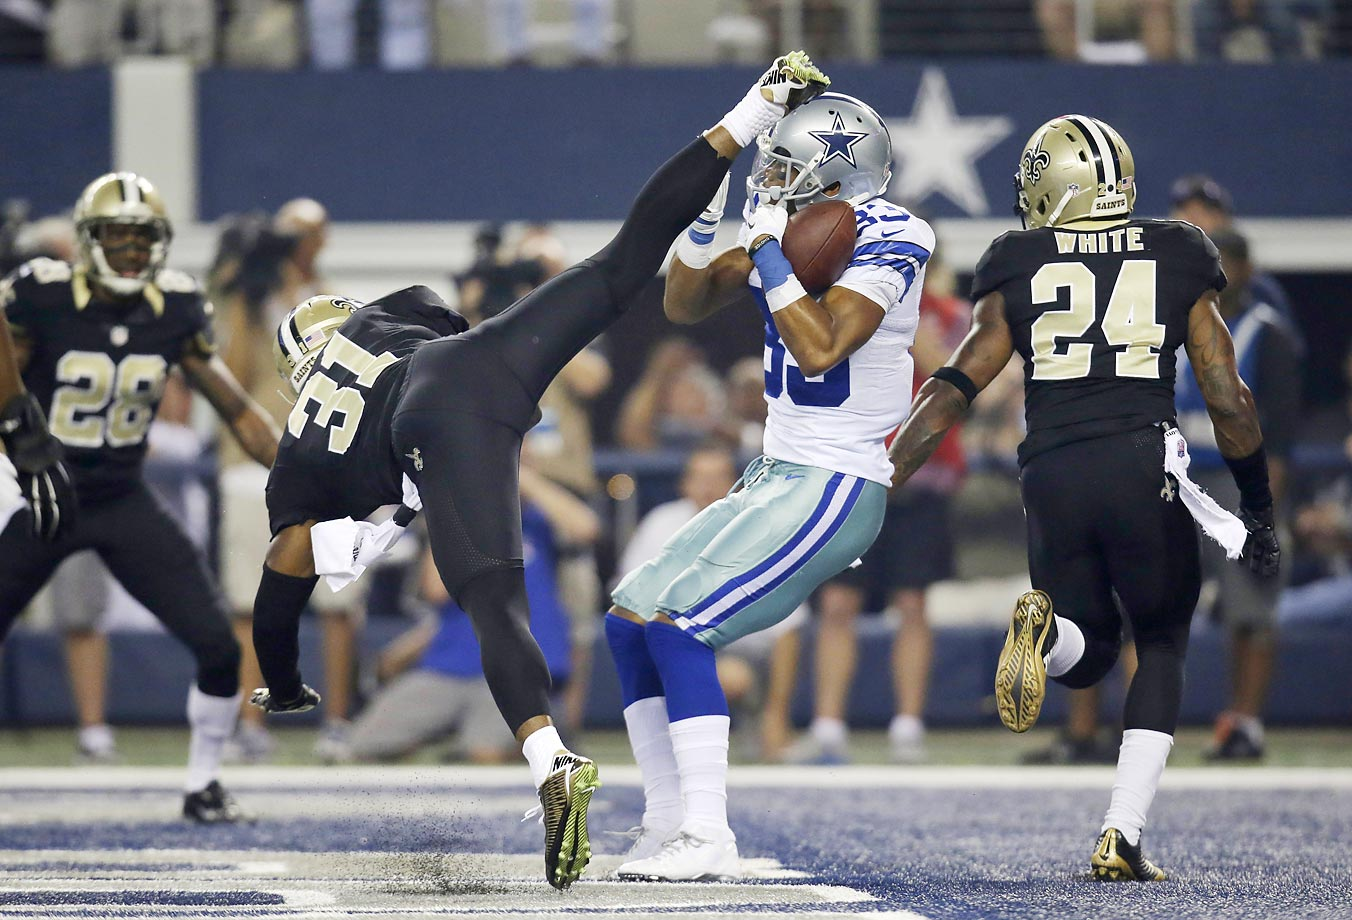 Dallas Cowboys wide receiver Terrance Williams scores a touchdown against the New Orleans Saints.